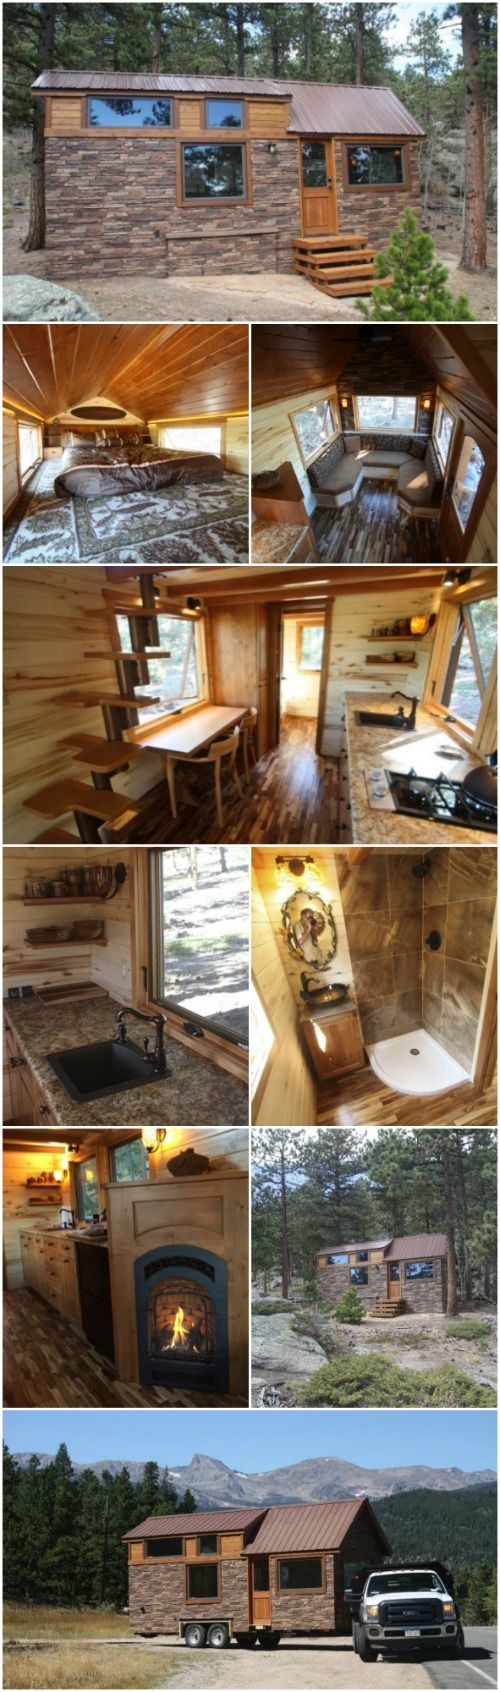 SimBLISSity Tiny House Builders Design Gorgeous Stone Cottage in Colorado - SimBLISSity Tiny Homes is a company that we've recently stumbled upon and we cannot get enough of their incredible tiny houses so we'll be sharing a few of them with you in the future. First up is the 24' Stone Cottage which is absolutely exquisite in every detail! They didn't list a size but it looks like it's around 240 square feet.